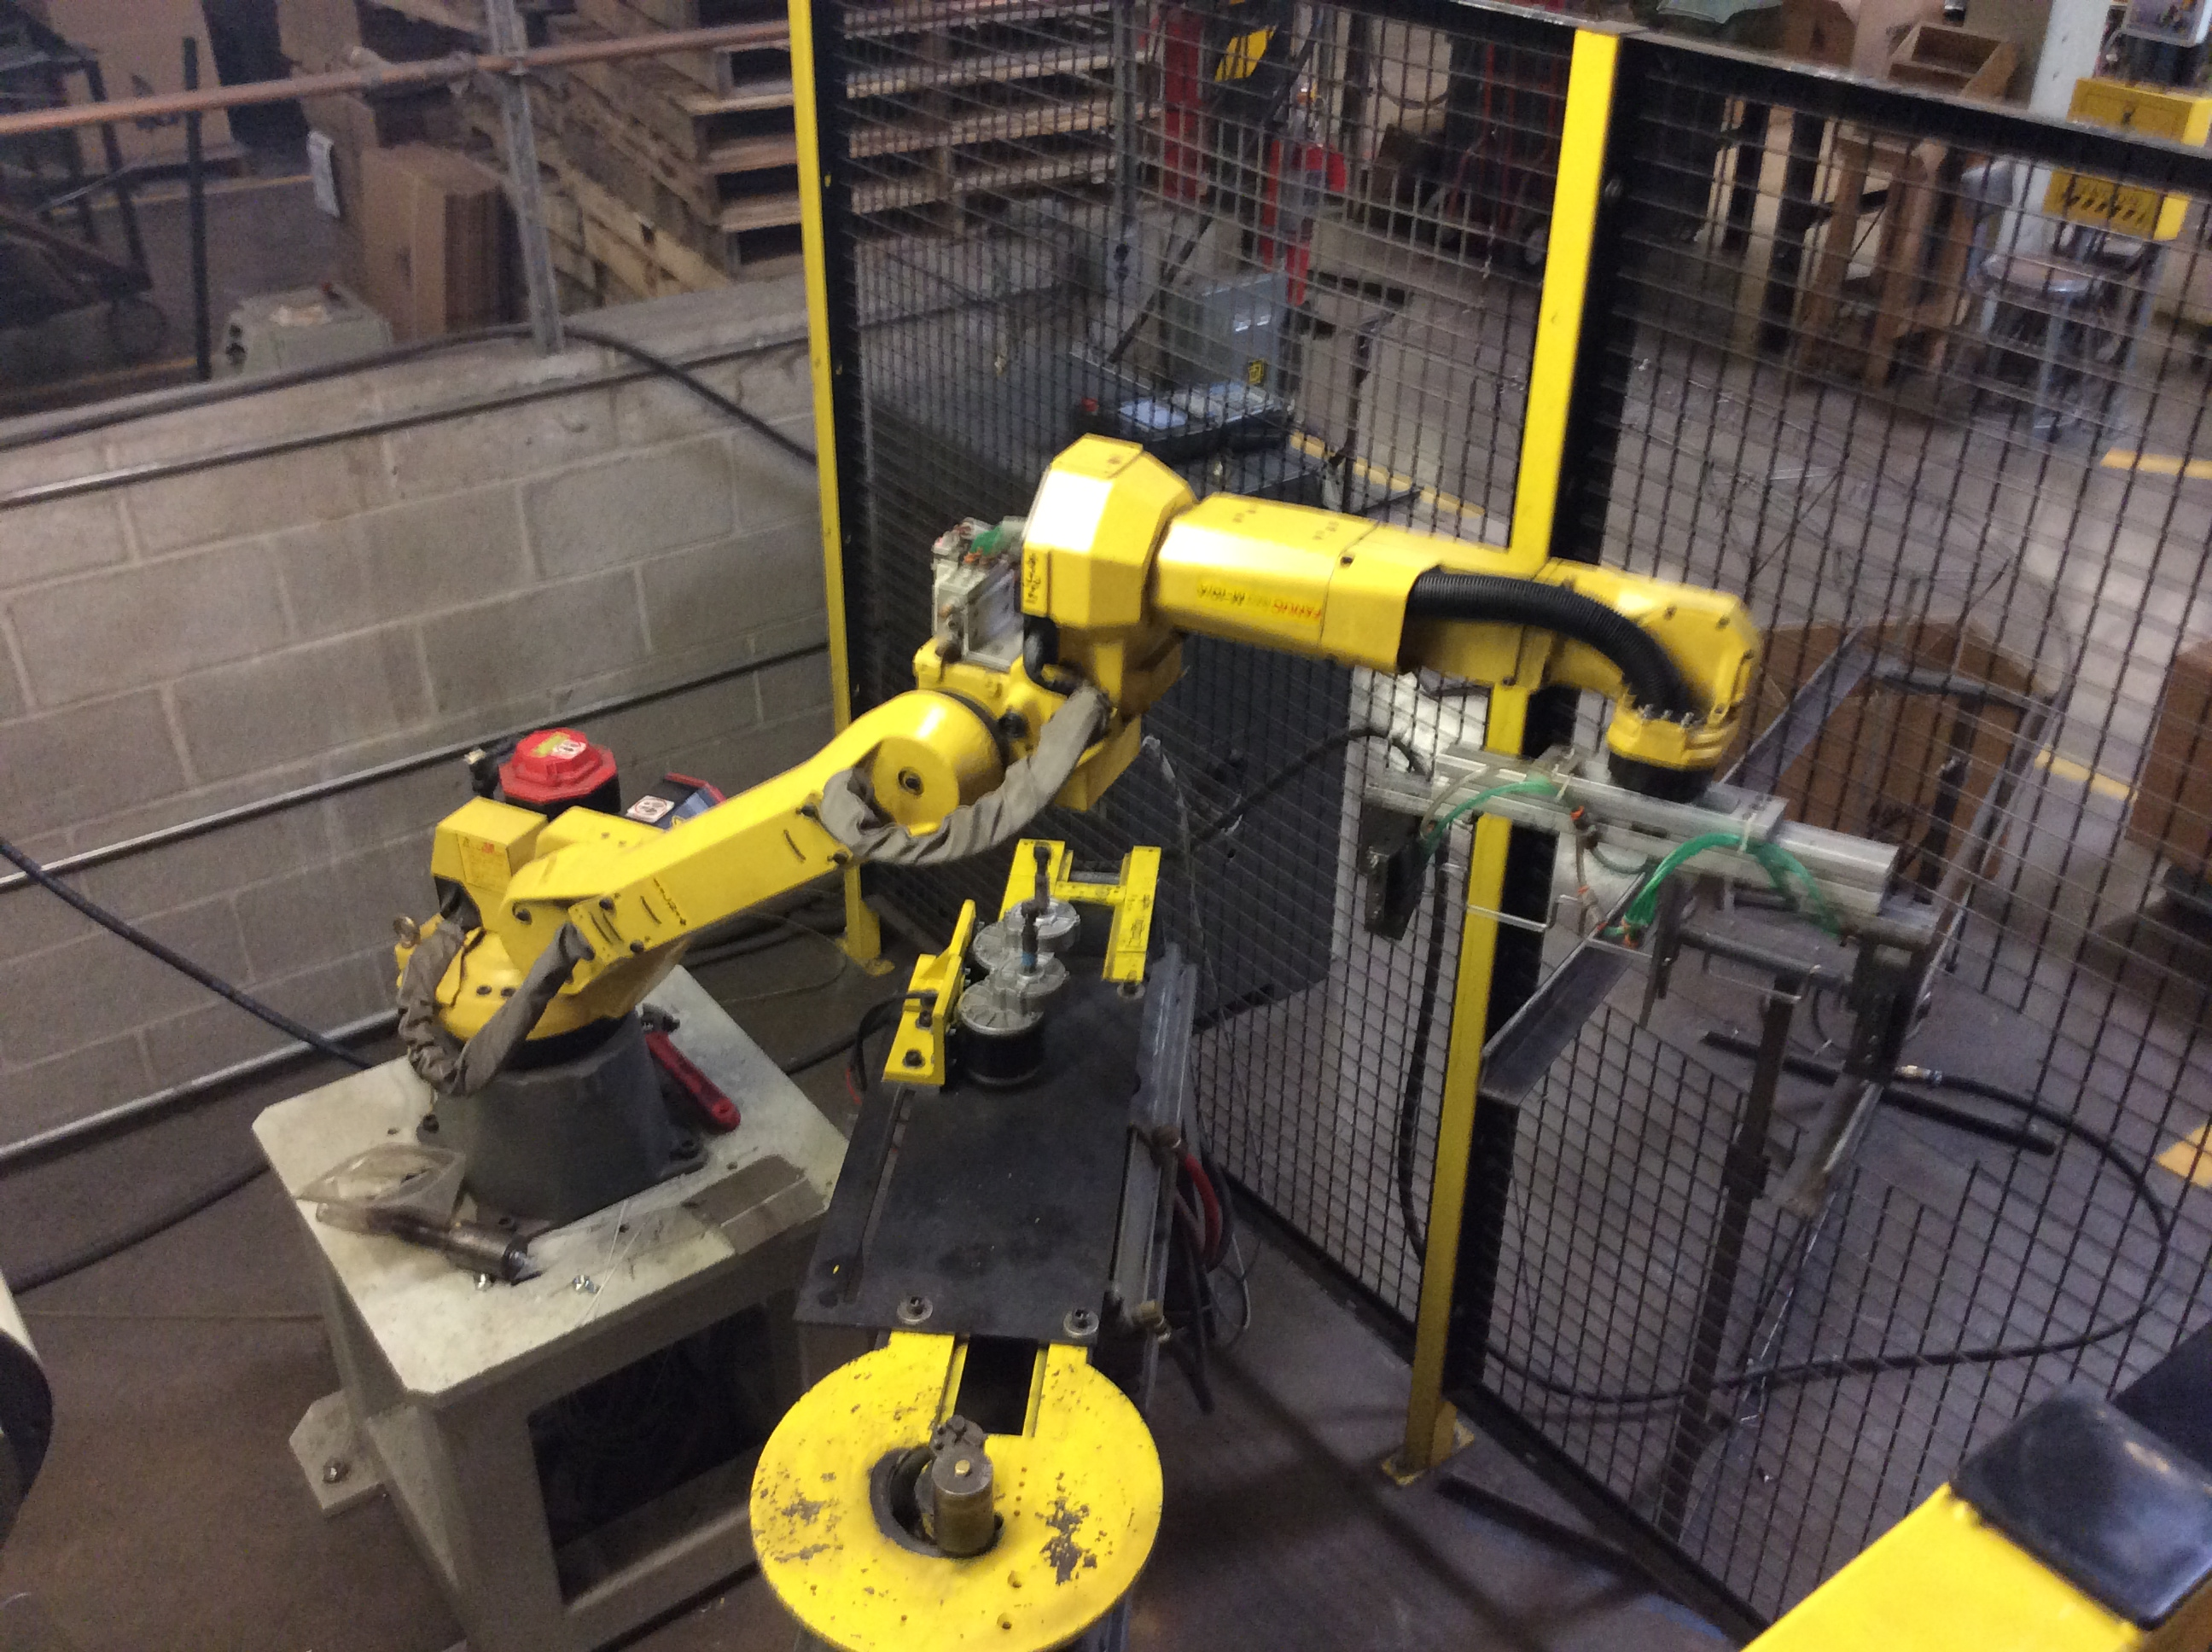 The Role of Robotics and Cobotics in Manufacturing